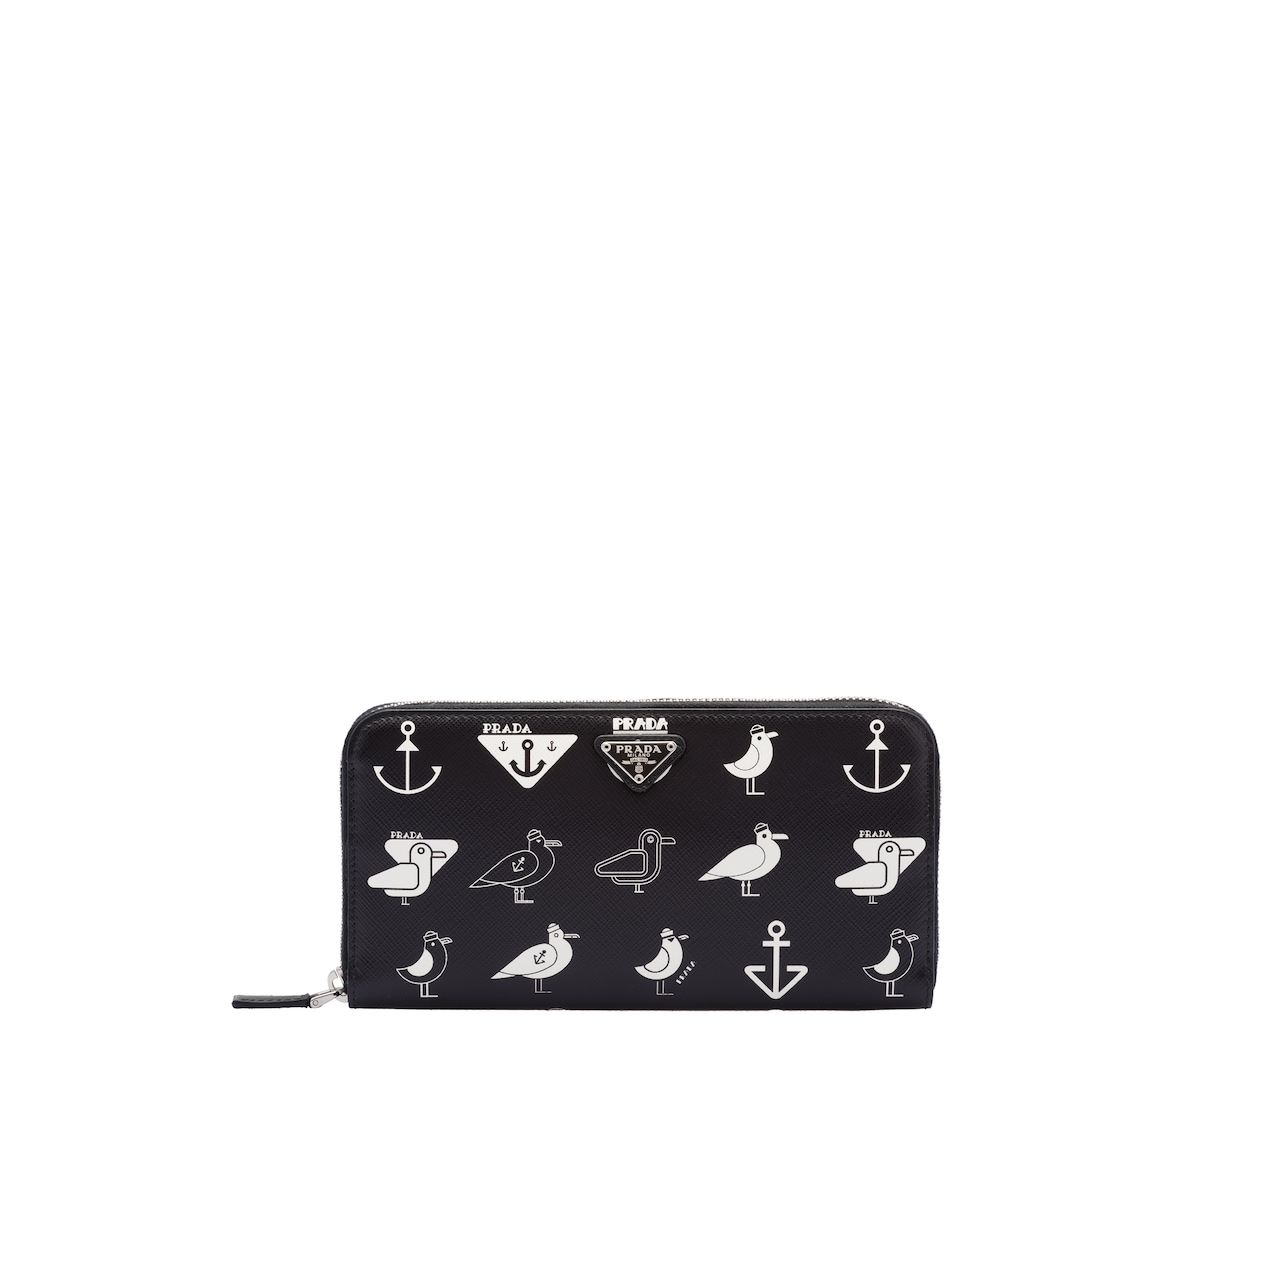 Printed Saffiano leather document holder